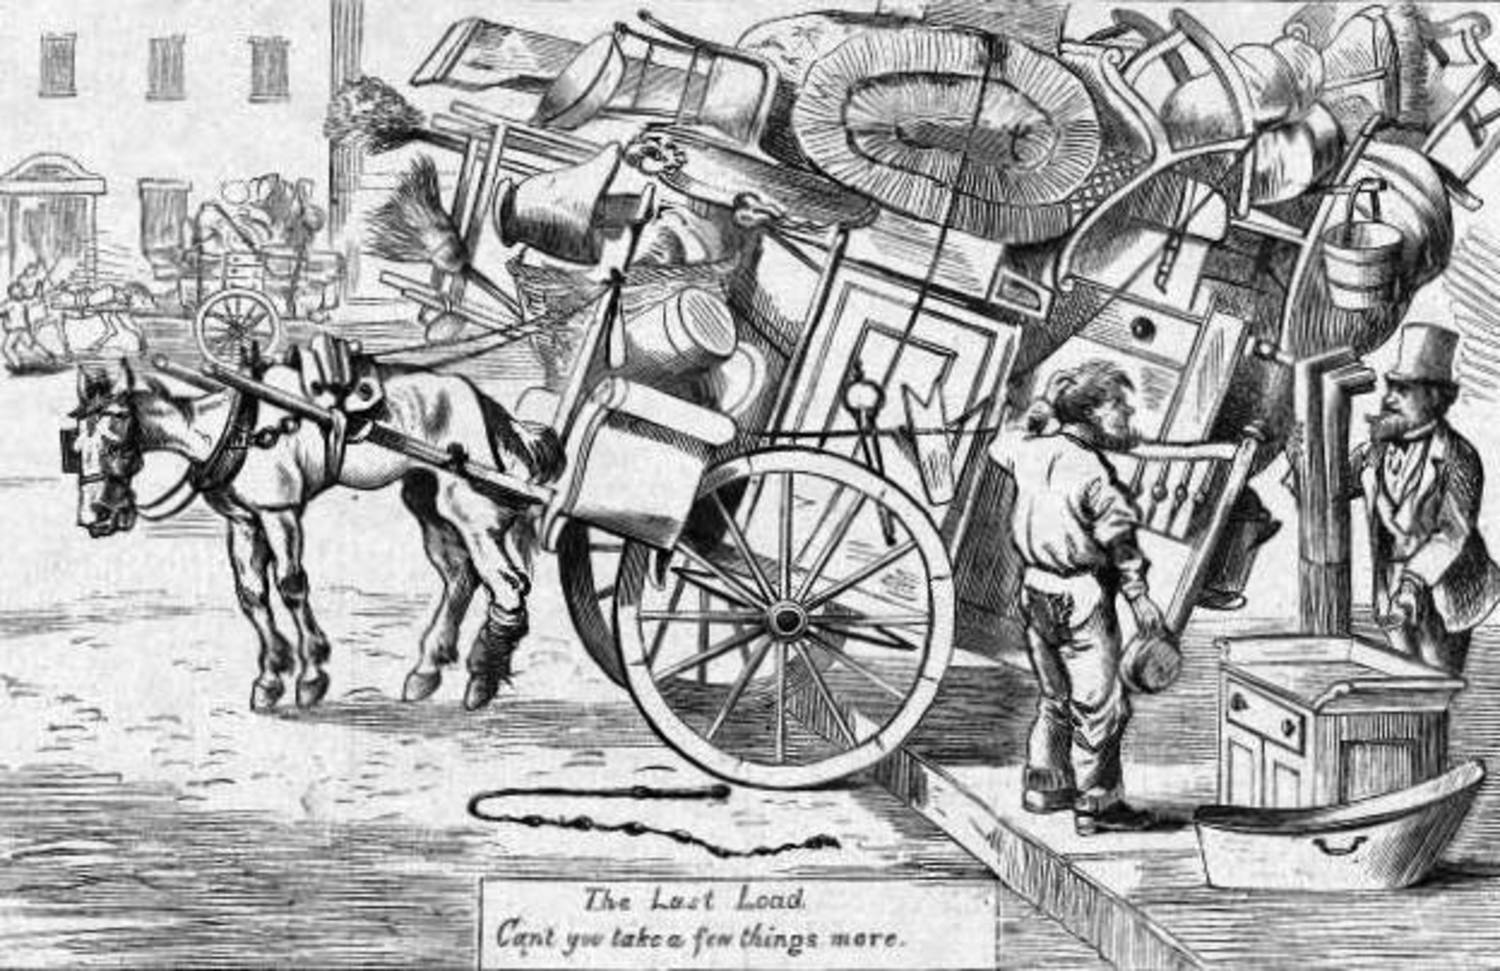 """Can't you take a few things more?"" A cartoon from Harper's Weekly, 1869. Image: public domain."